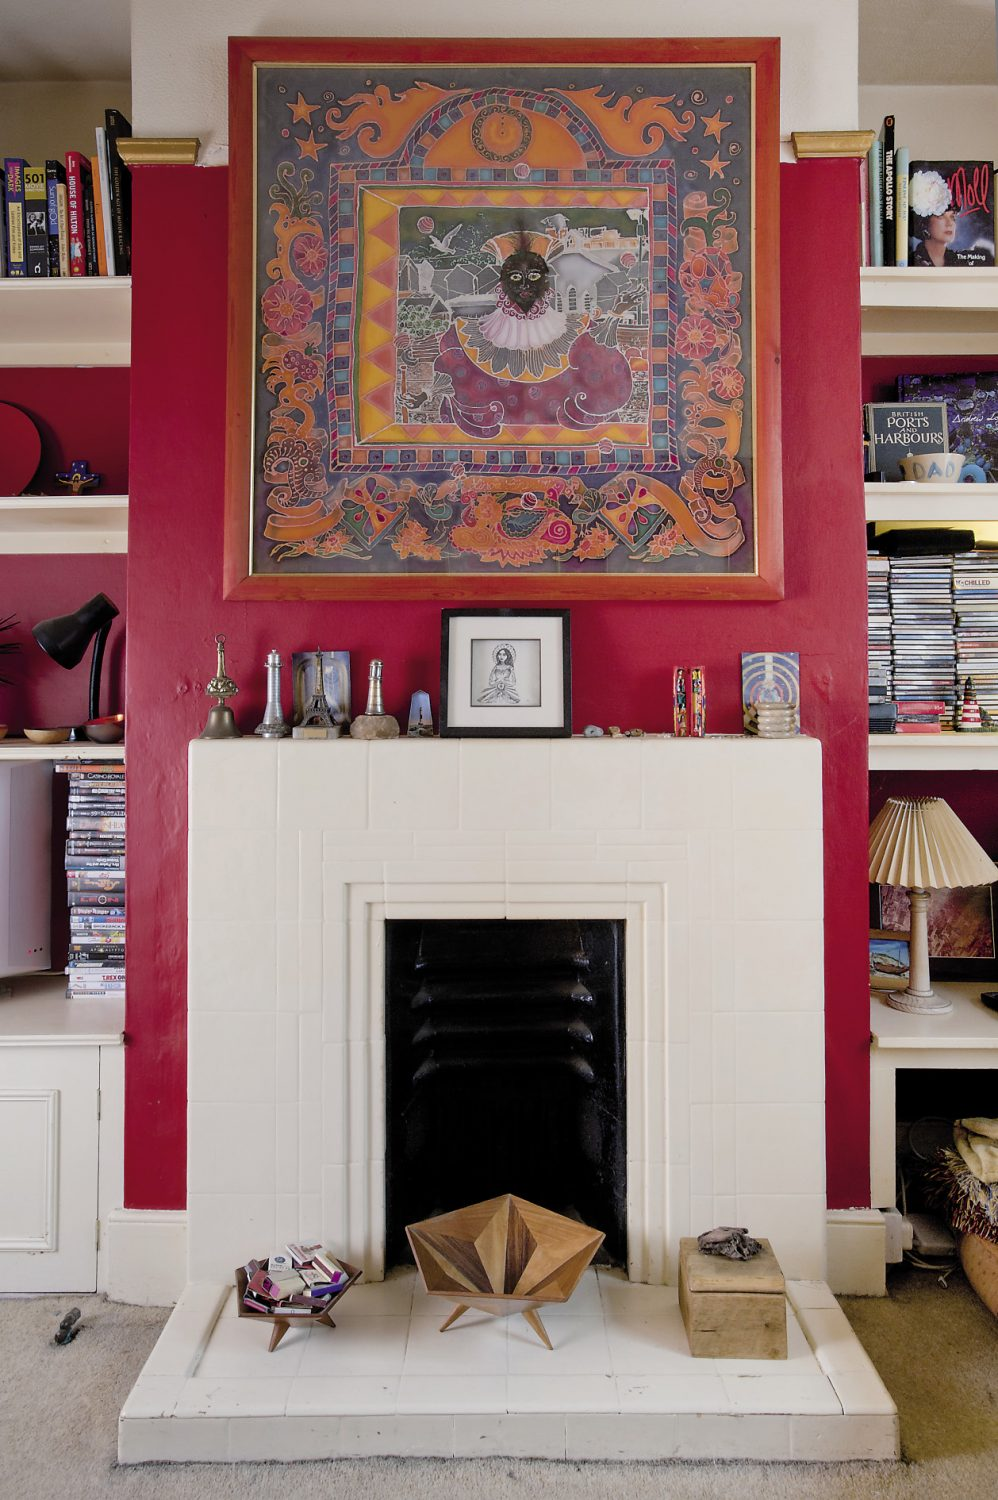 The sitting room is painted a rich, British red with a gold picture rail. Alastair's love of travel is evident throughout the room, from the oriental rug on the floor to the kilim-style printed fabric that covers the armchair